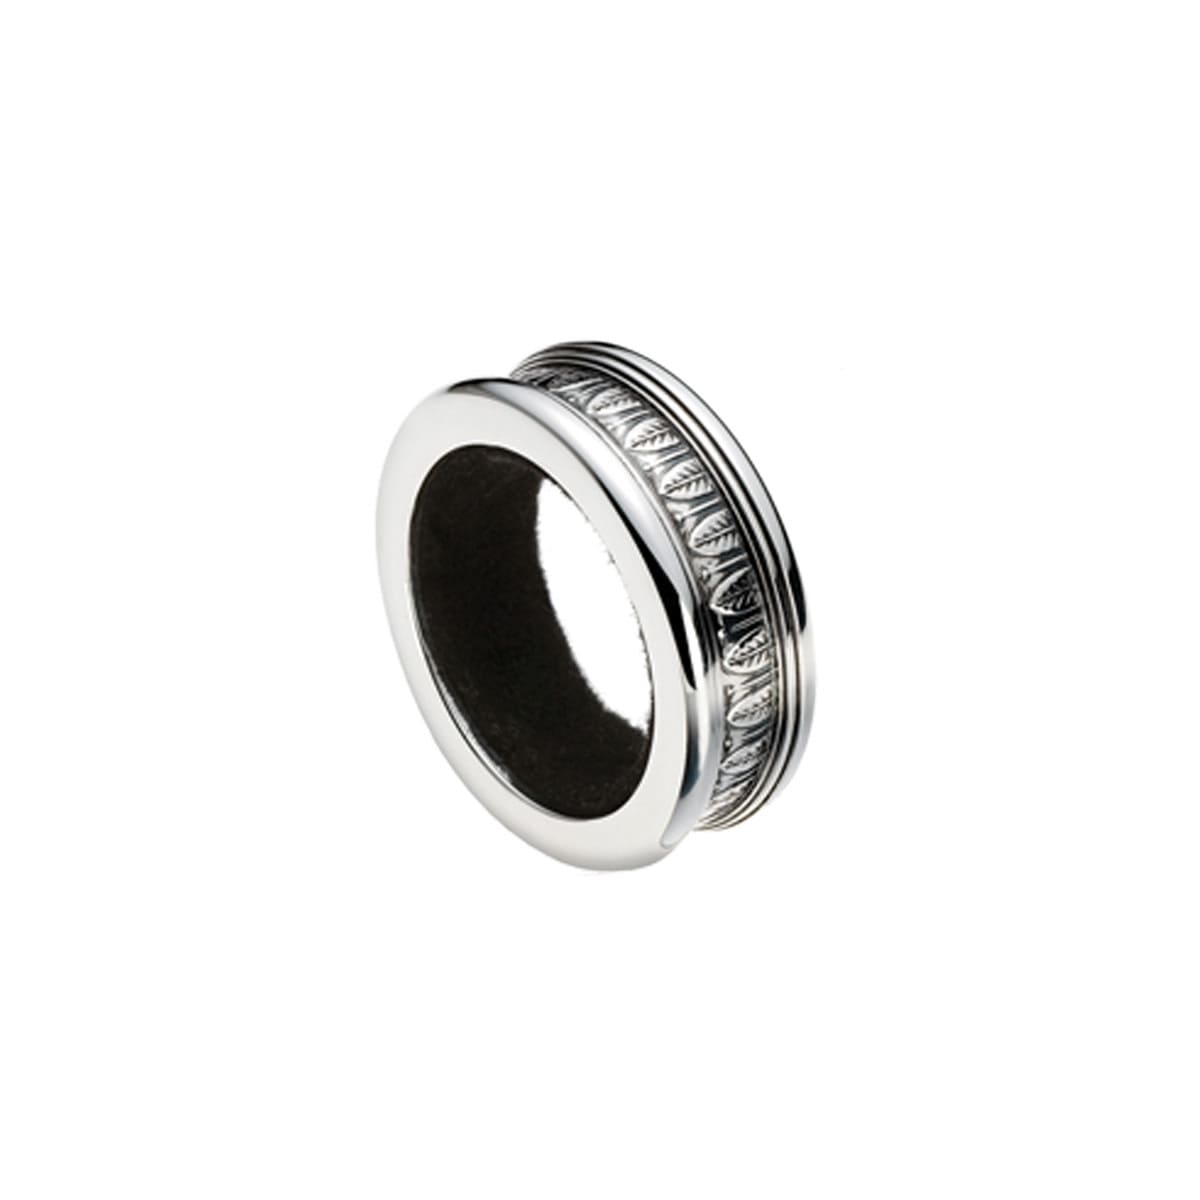 christofle jewellery silver plated bottle ring